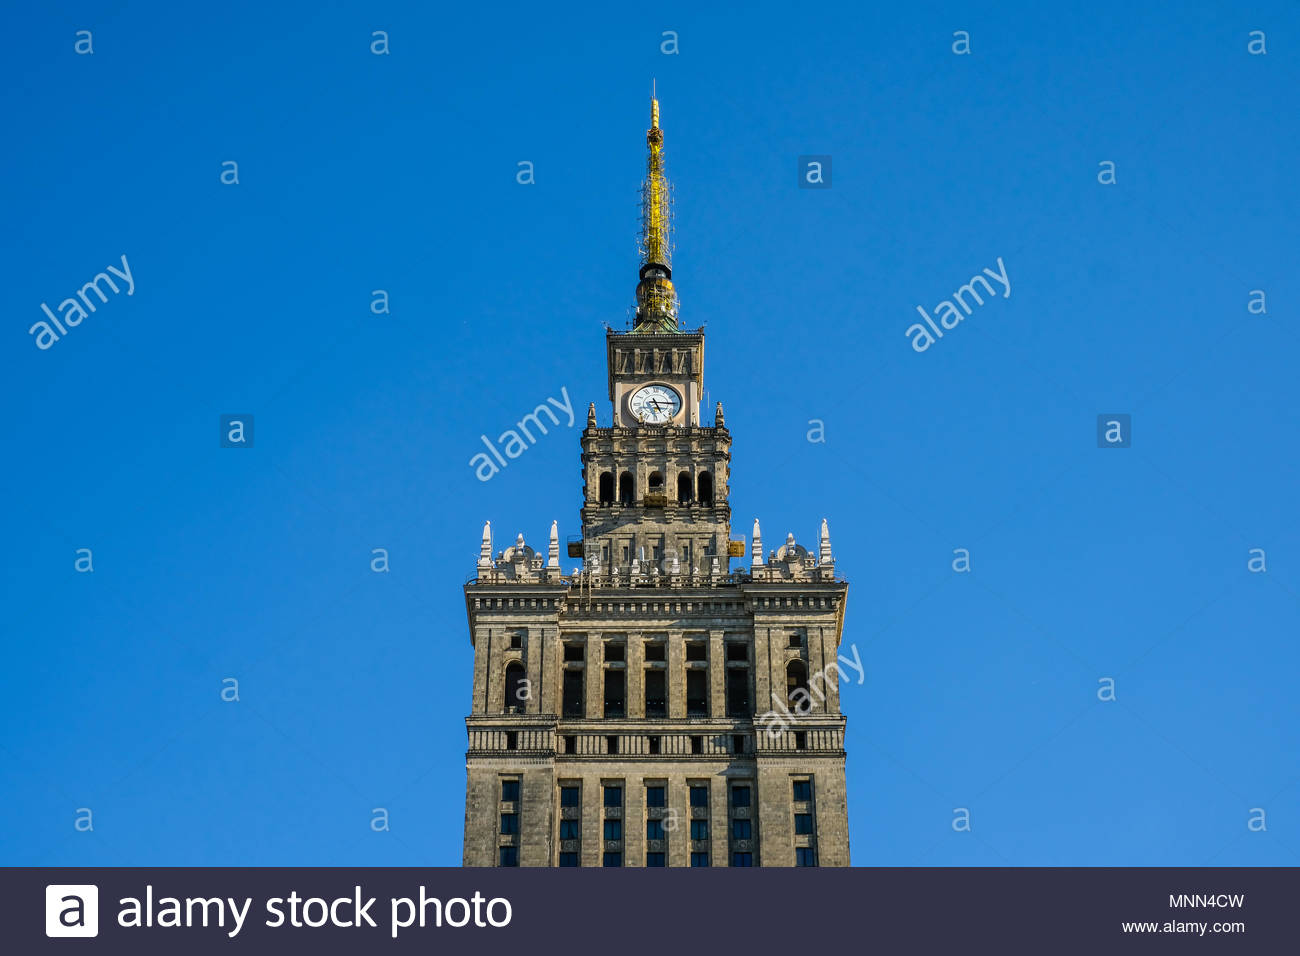 Palace of Culture and Science in Warsaw Poland - Stock Image